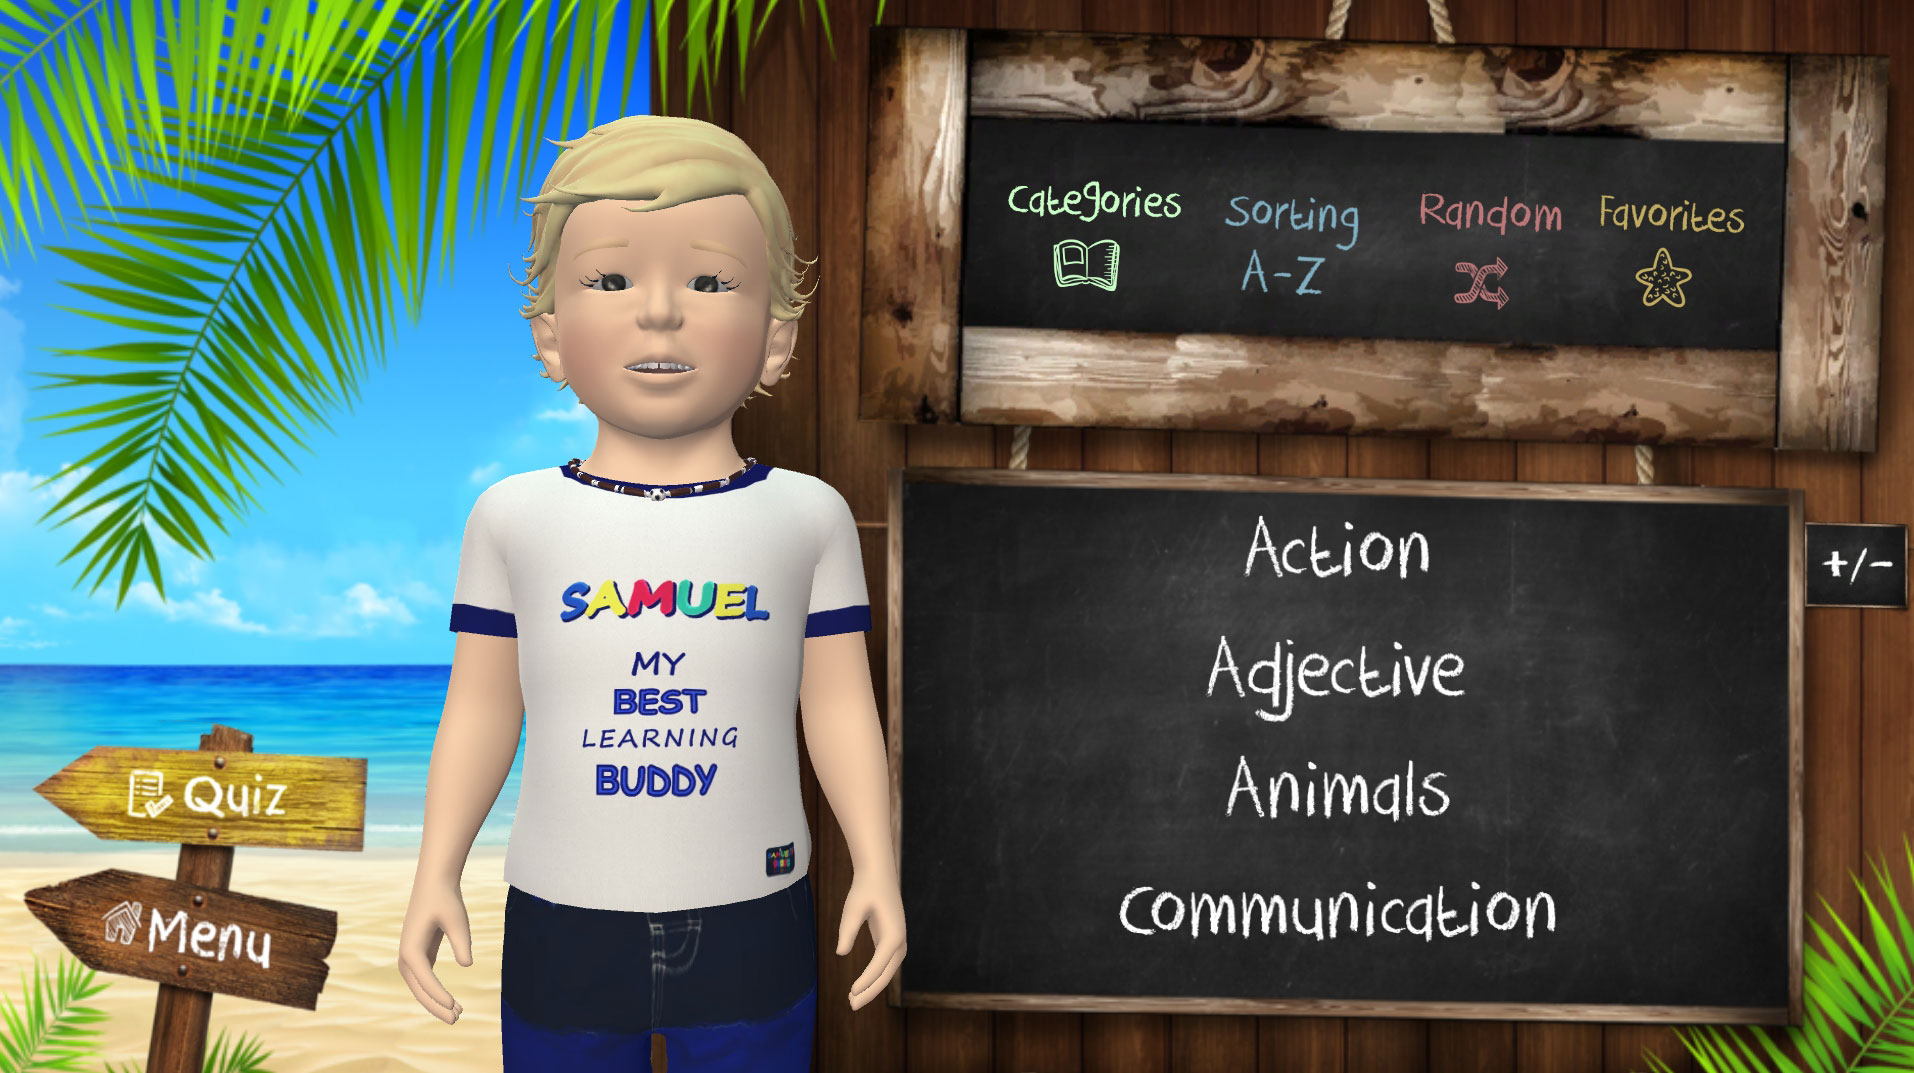 Samuel Signs - Educational Games - Mobile application - categories